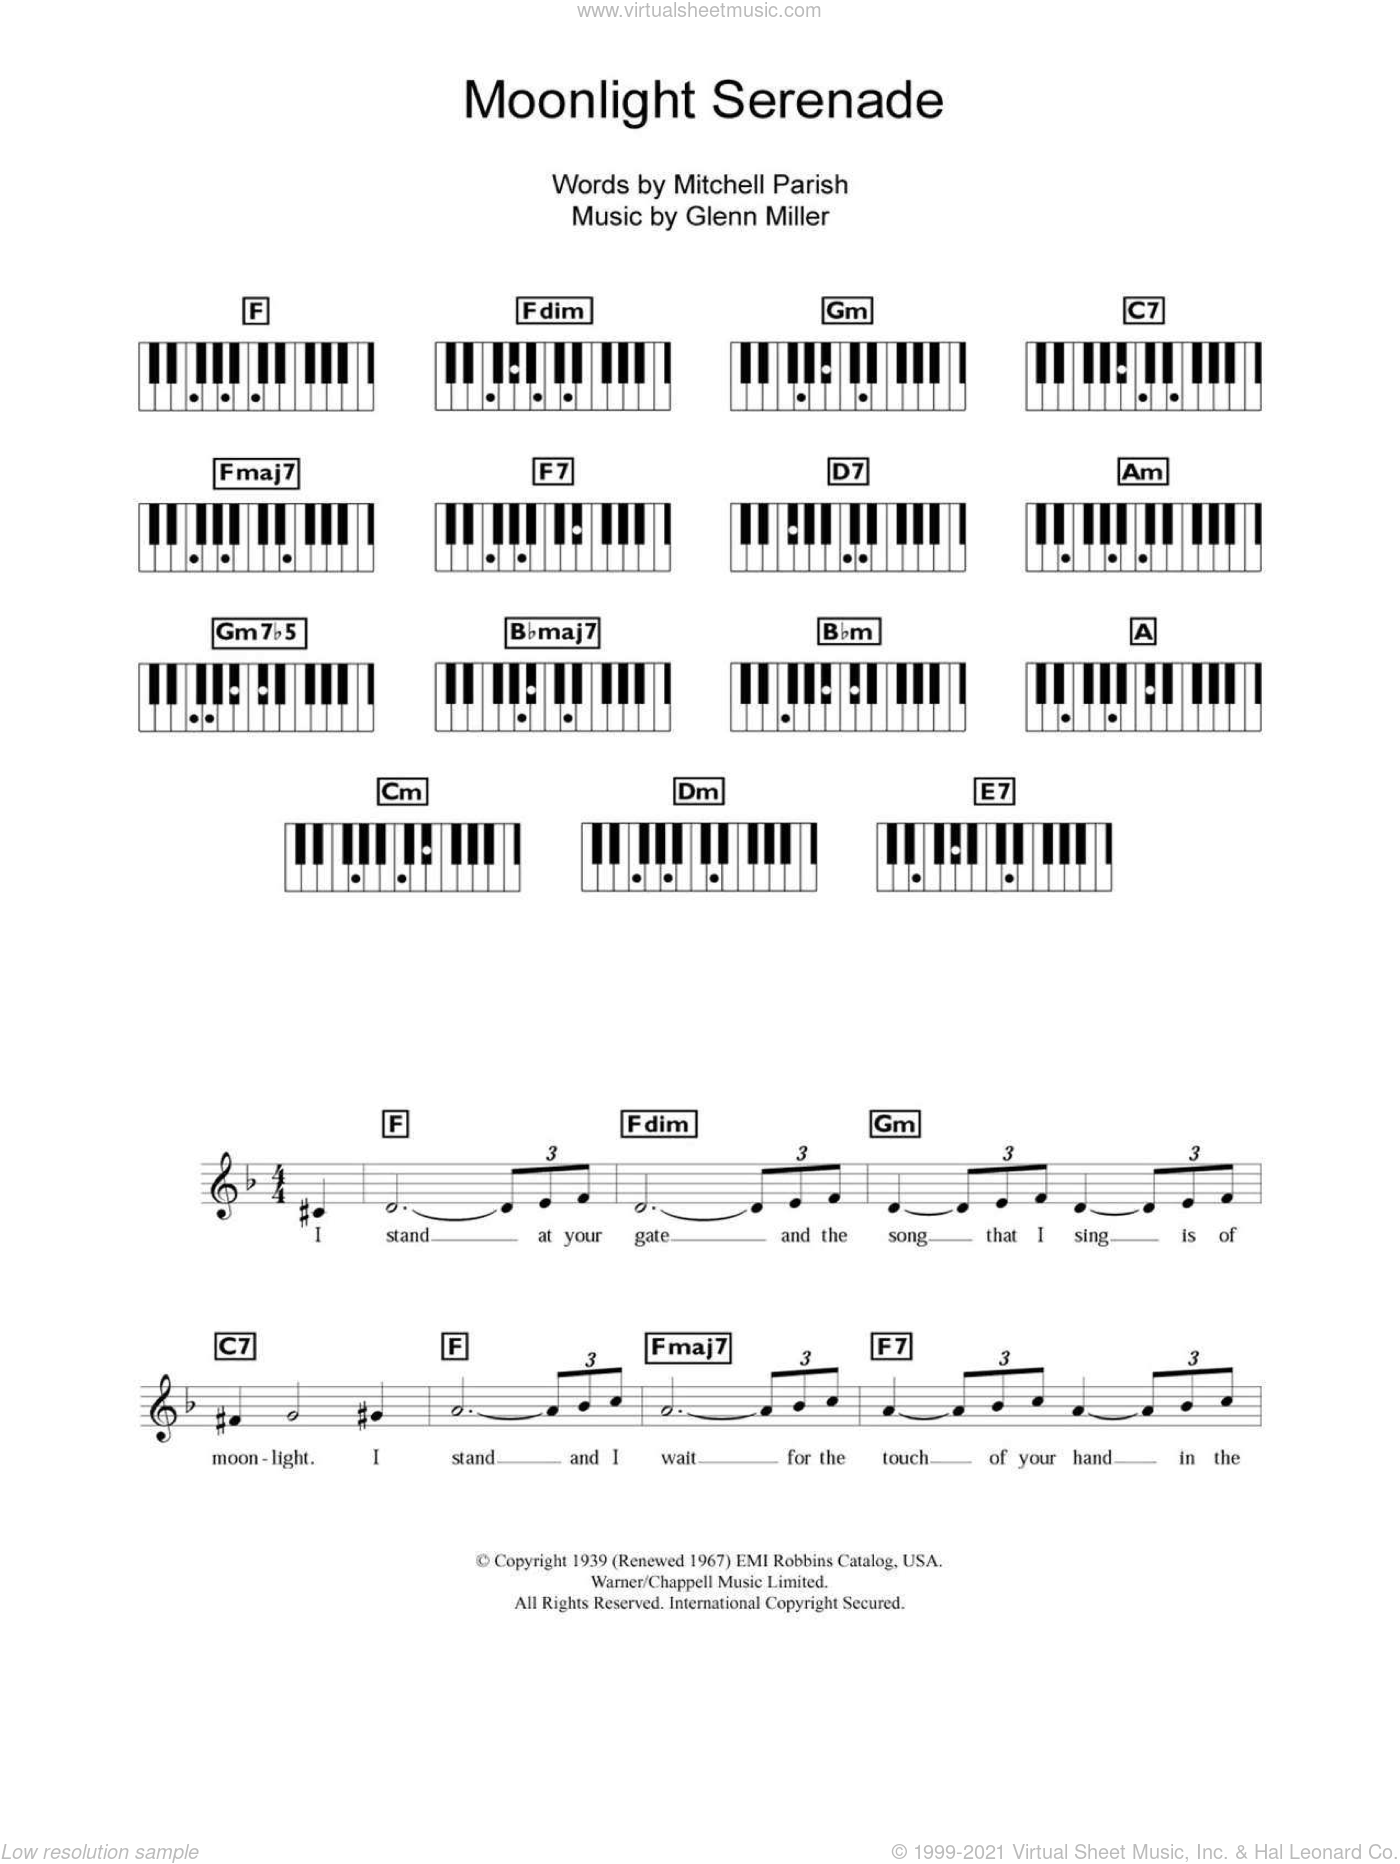 Moonlight Serenade sheet music for piano solo (chords, lyrics, melody) by Mitchell Parish and Glenn Miller. Score Image Preview.